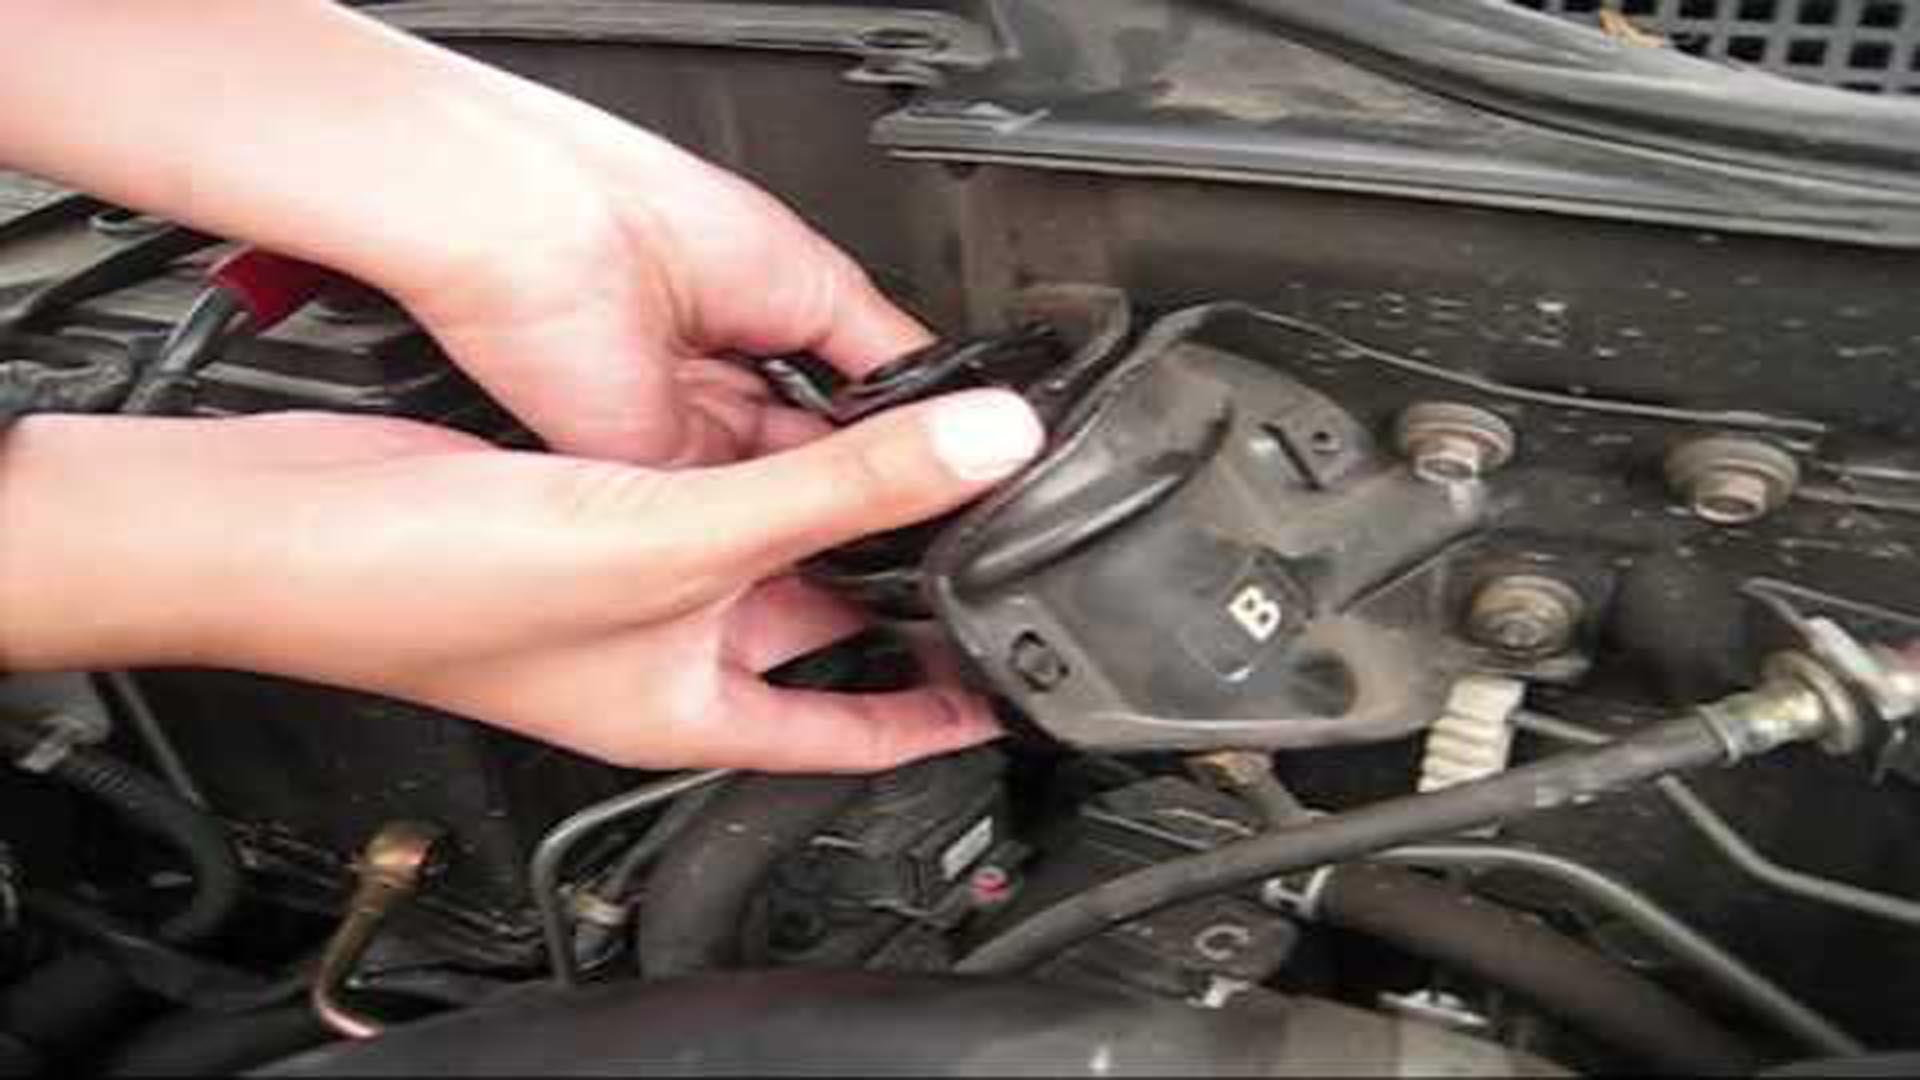 Honda Civic: How to Replace Fuel Filter | Honda-techHonda-Tech